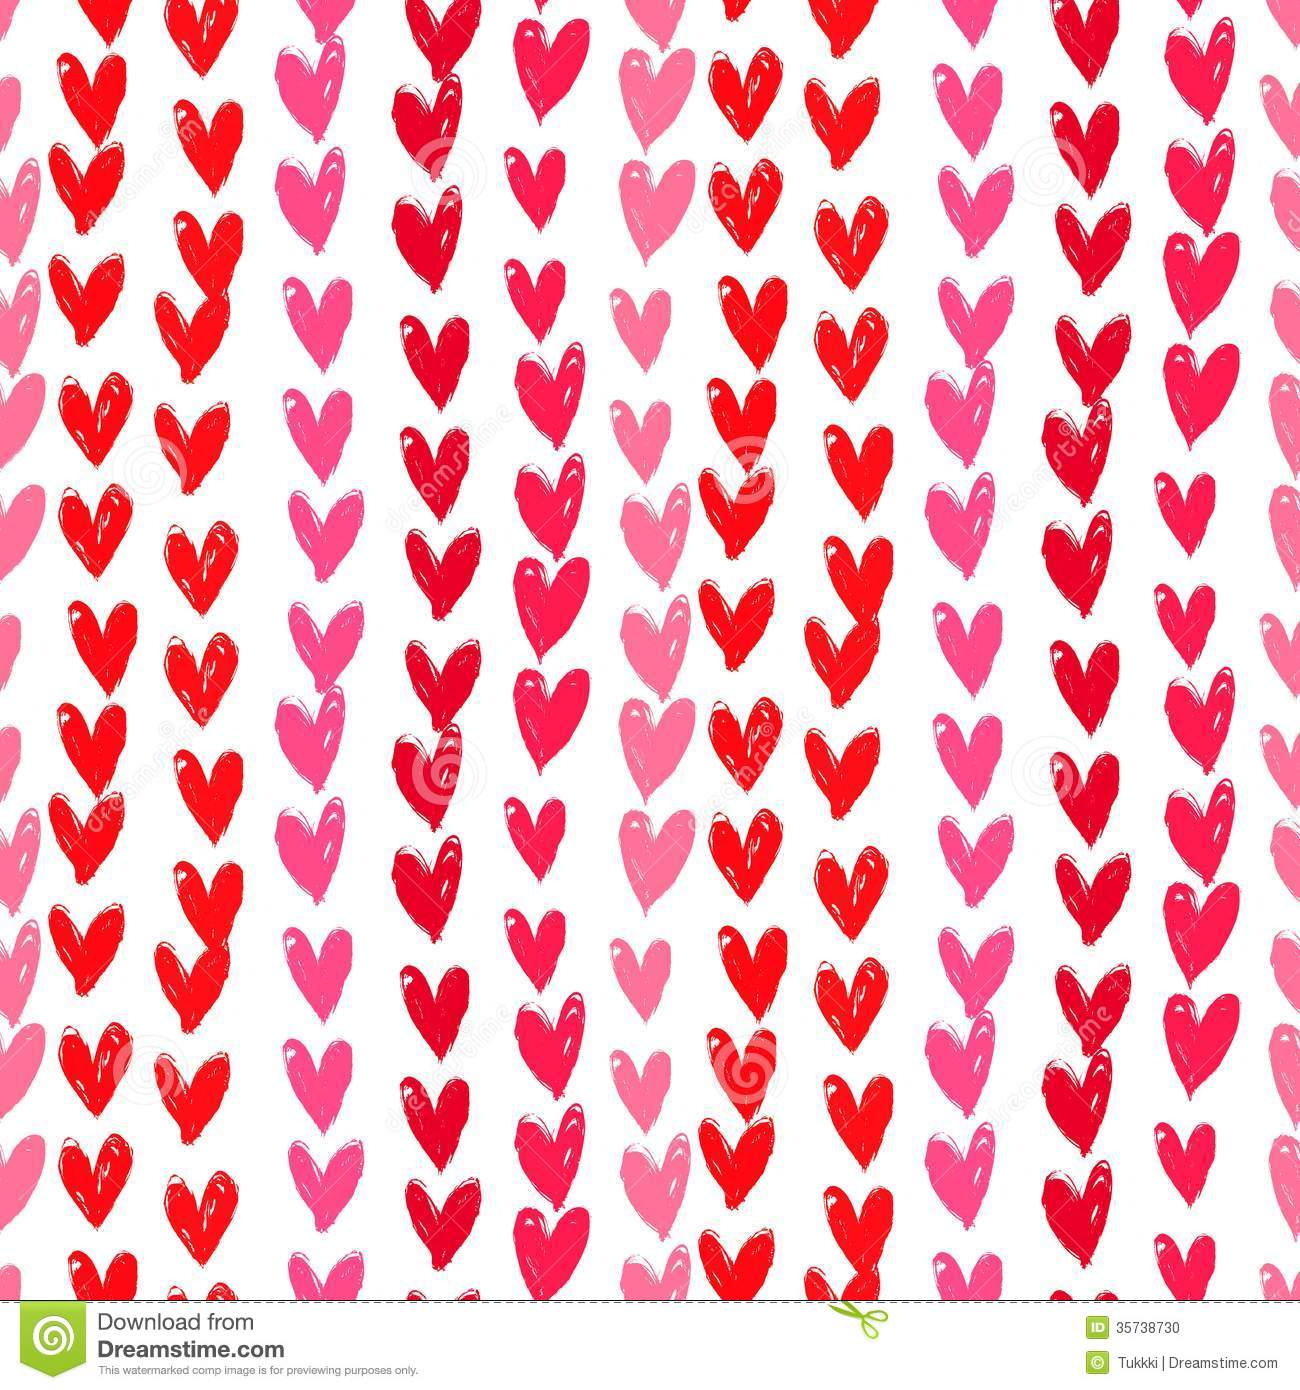 velentine's day pattern with hand painted hearts. stock vector